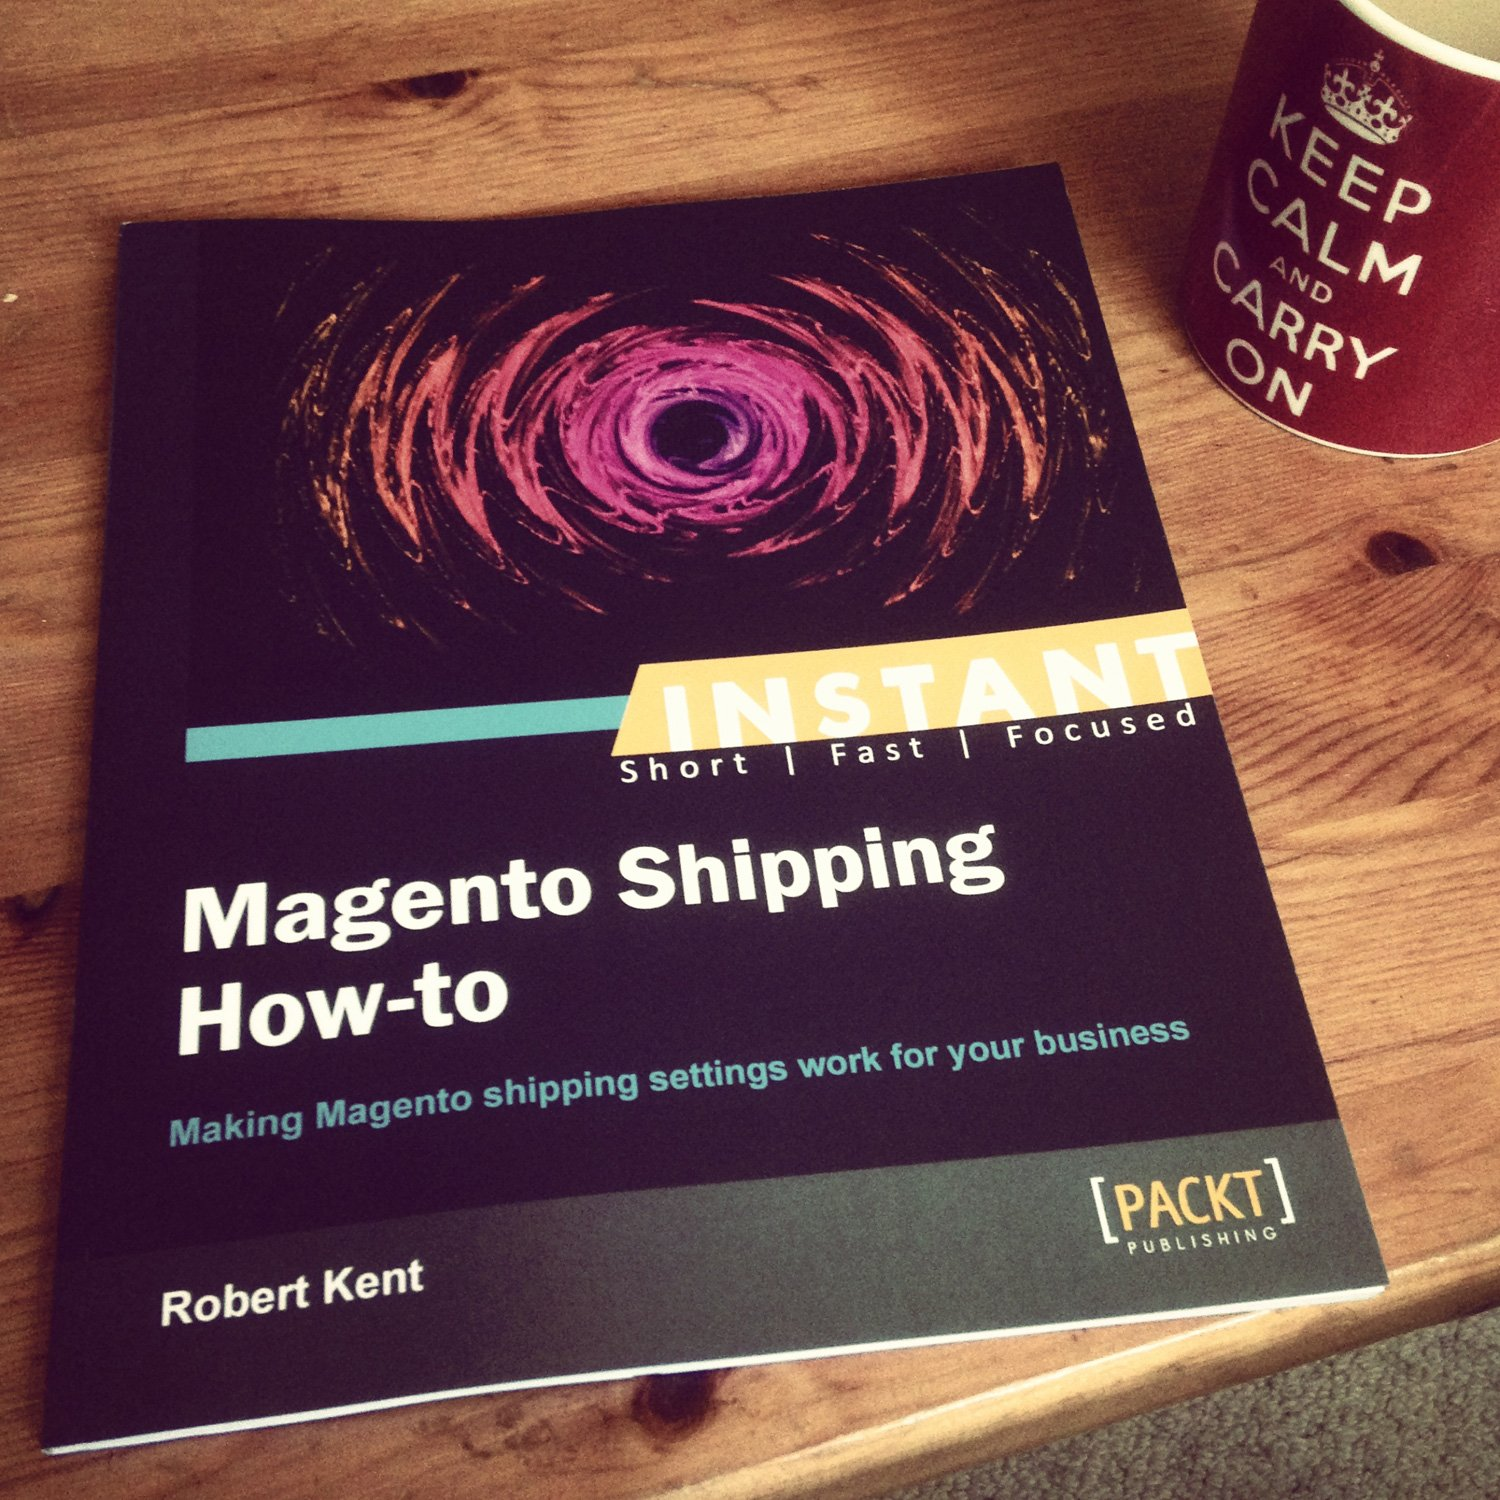 magento-shipping-how-to